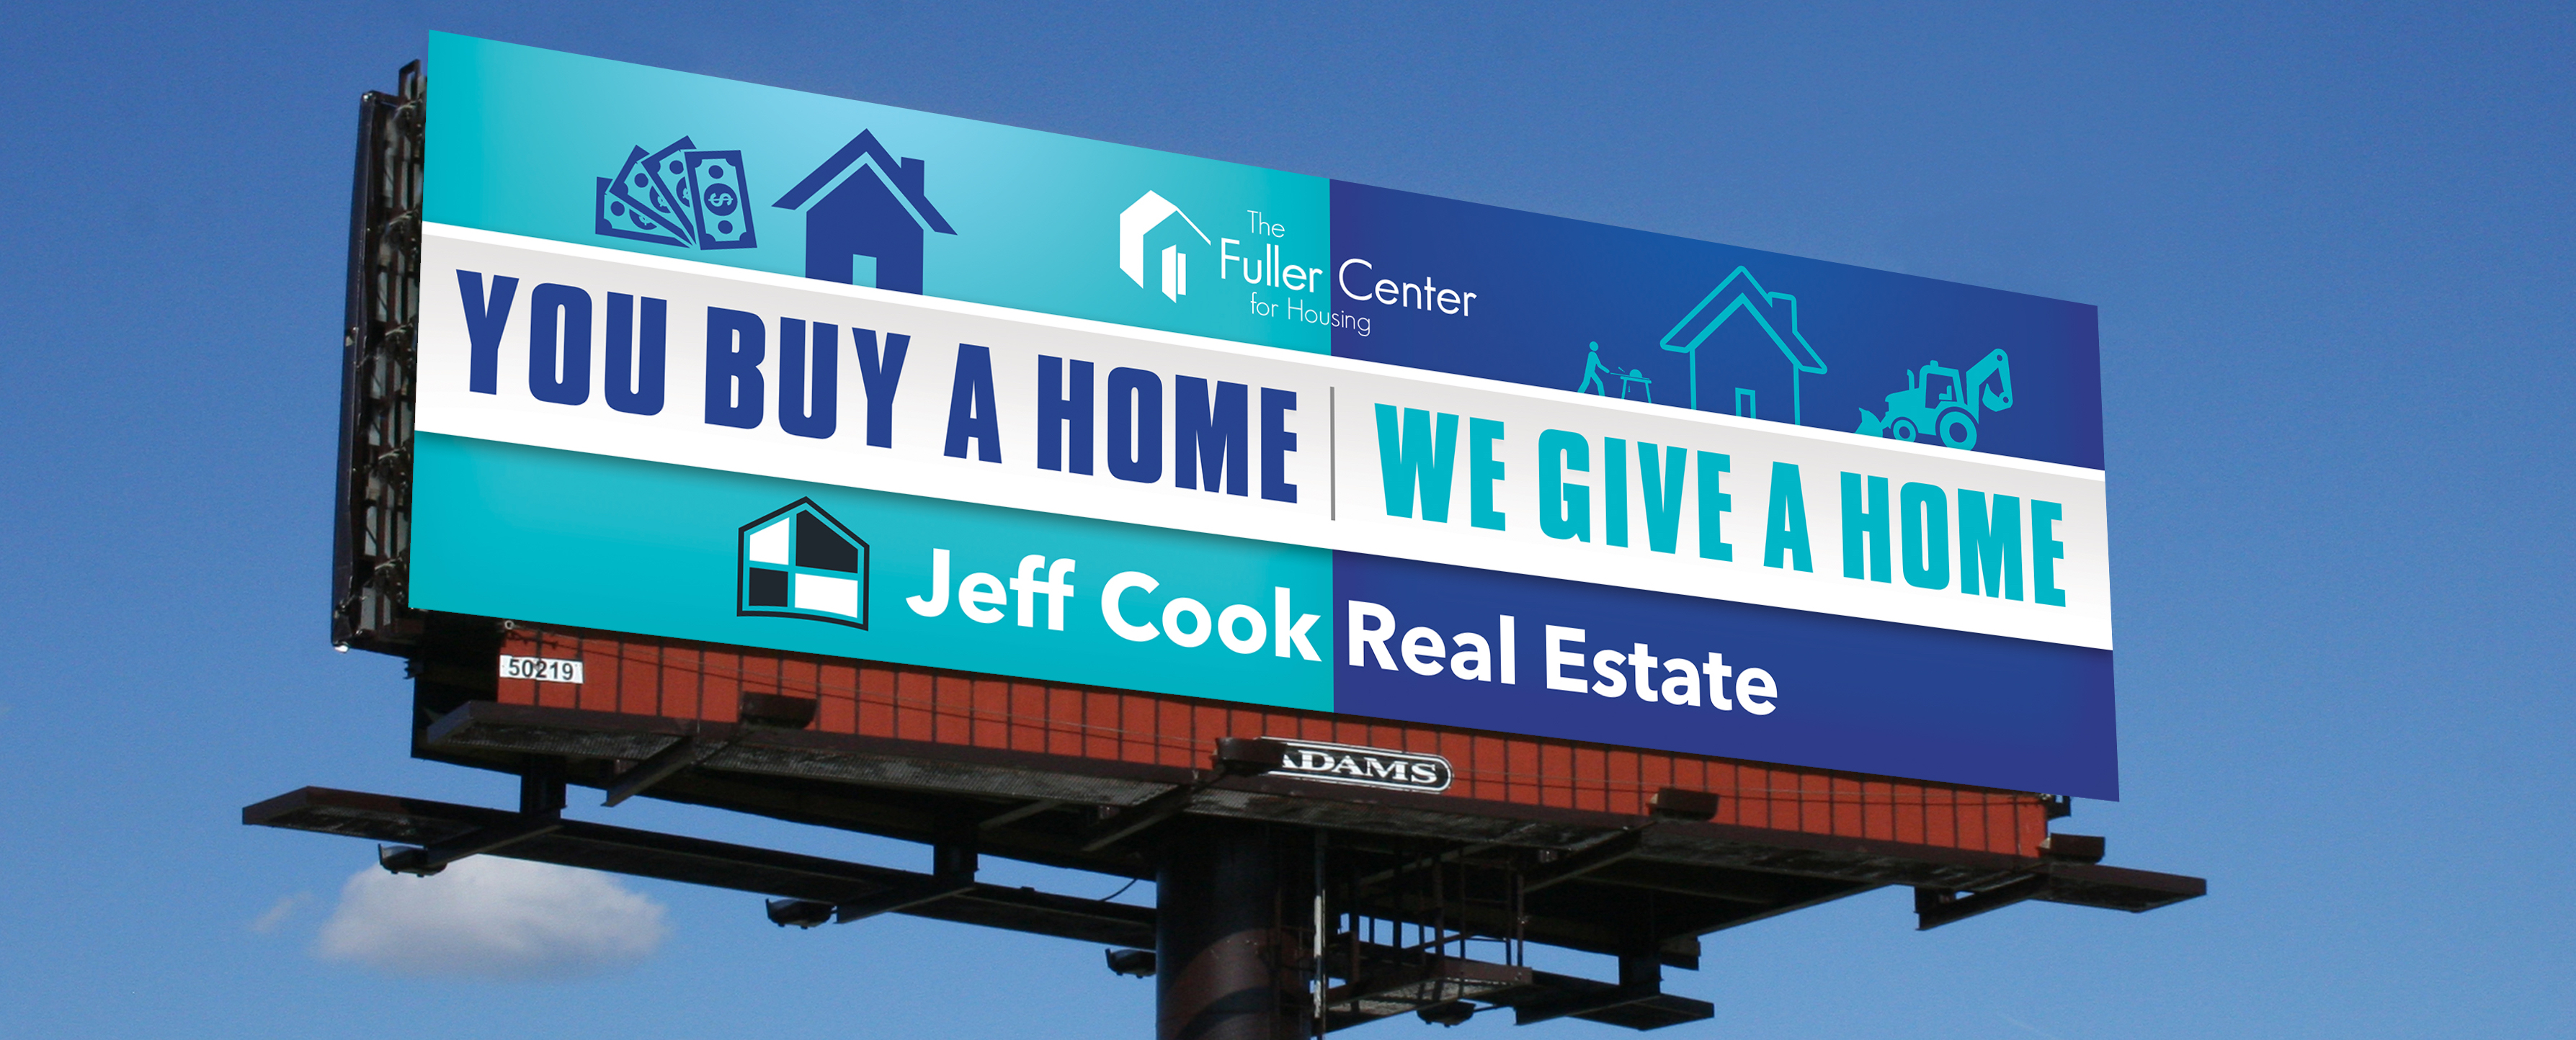 Buy a Home Give a Home Billboard Charleston Jeff Cook Real Estate